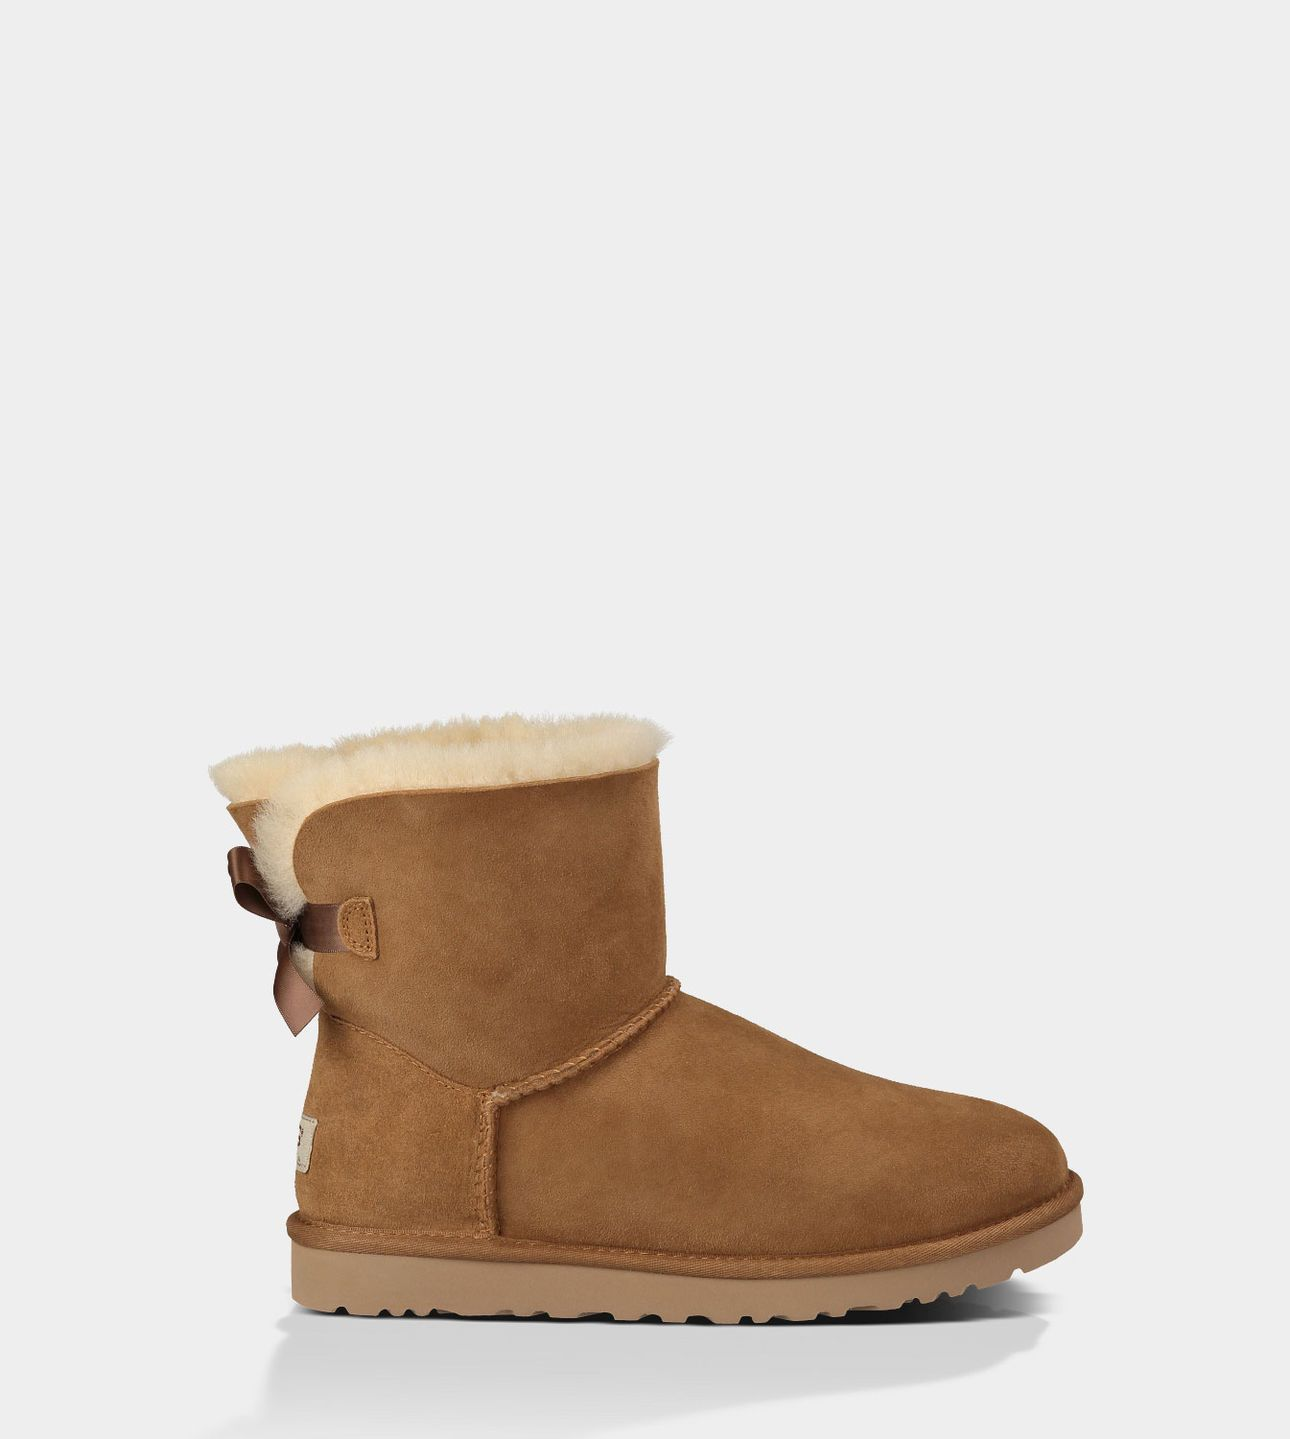 cheap bailey bow uggs womens